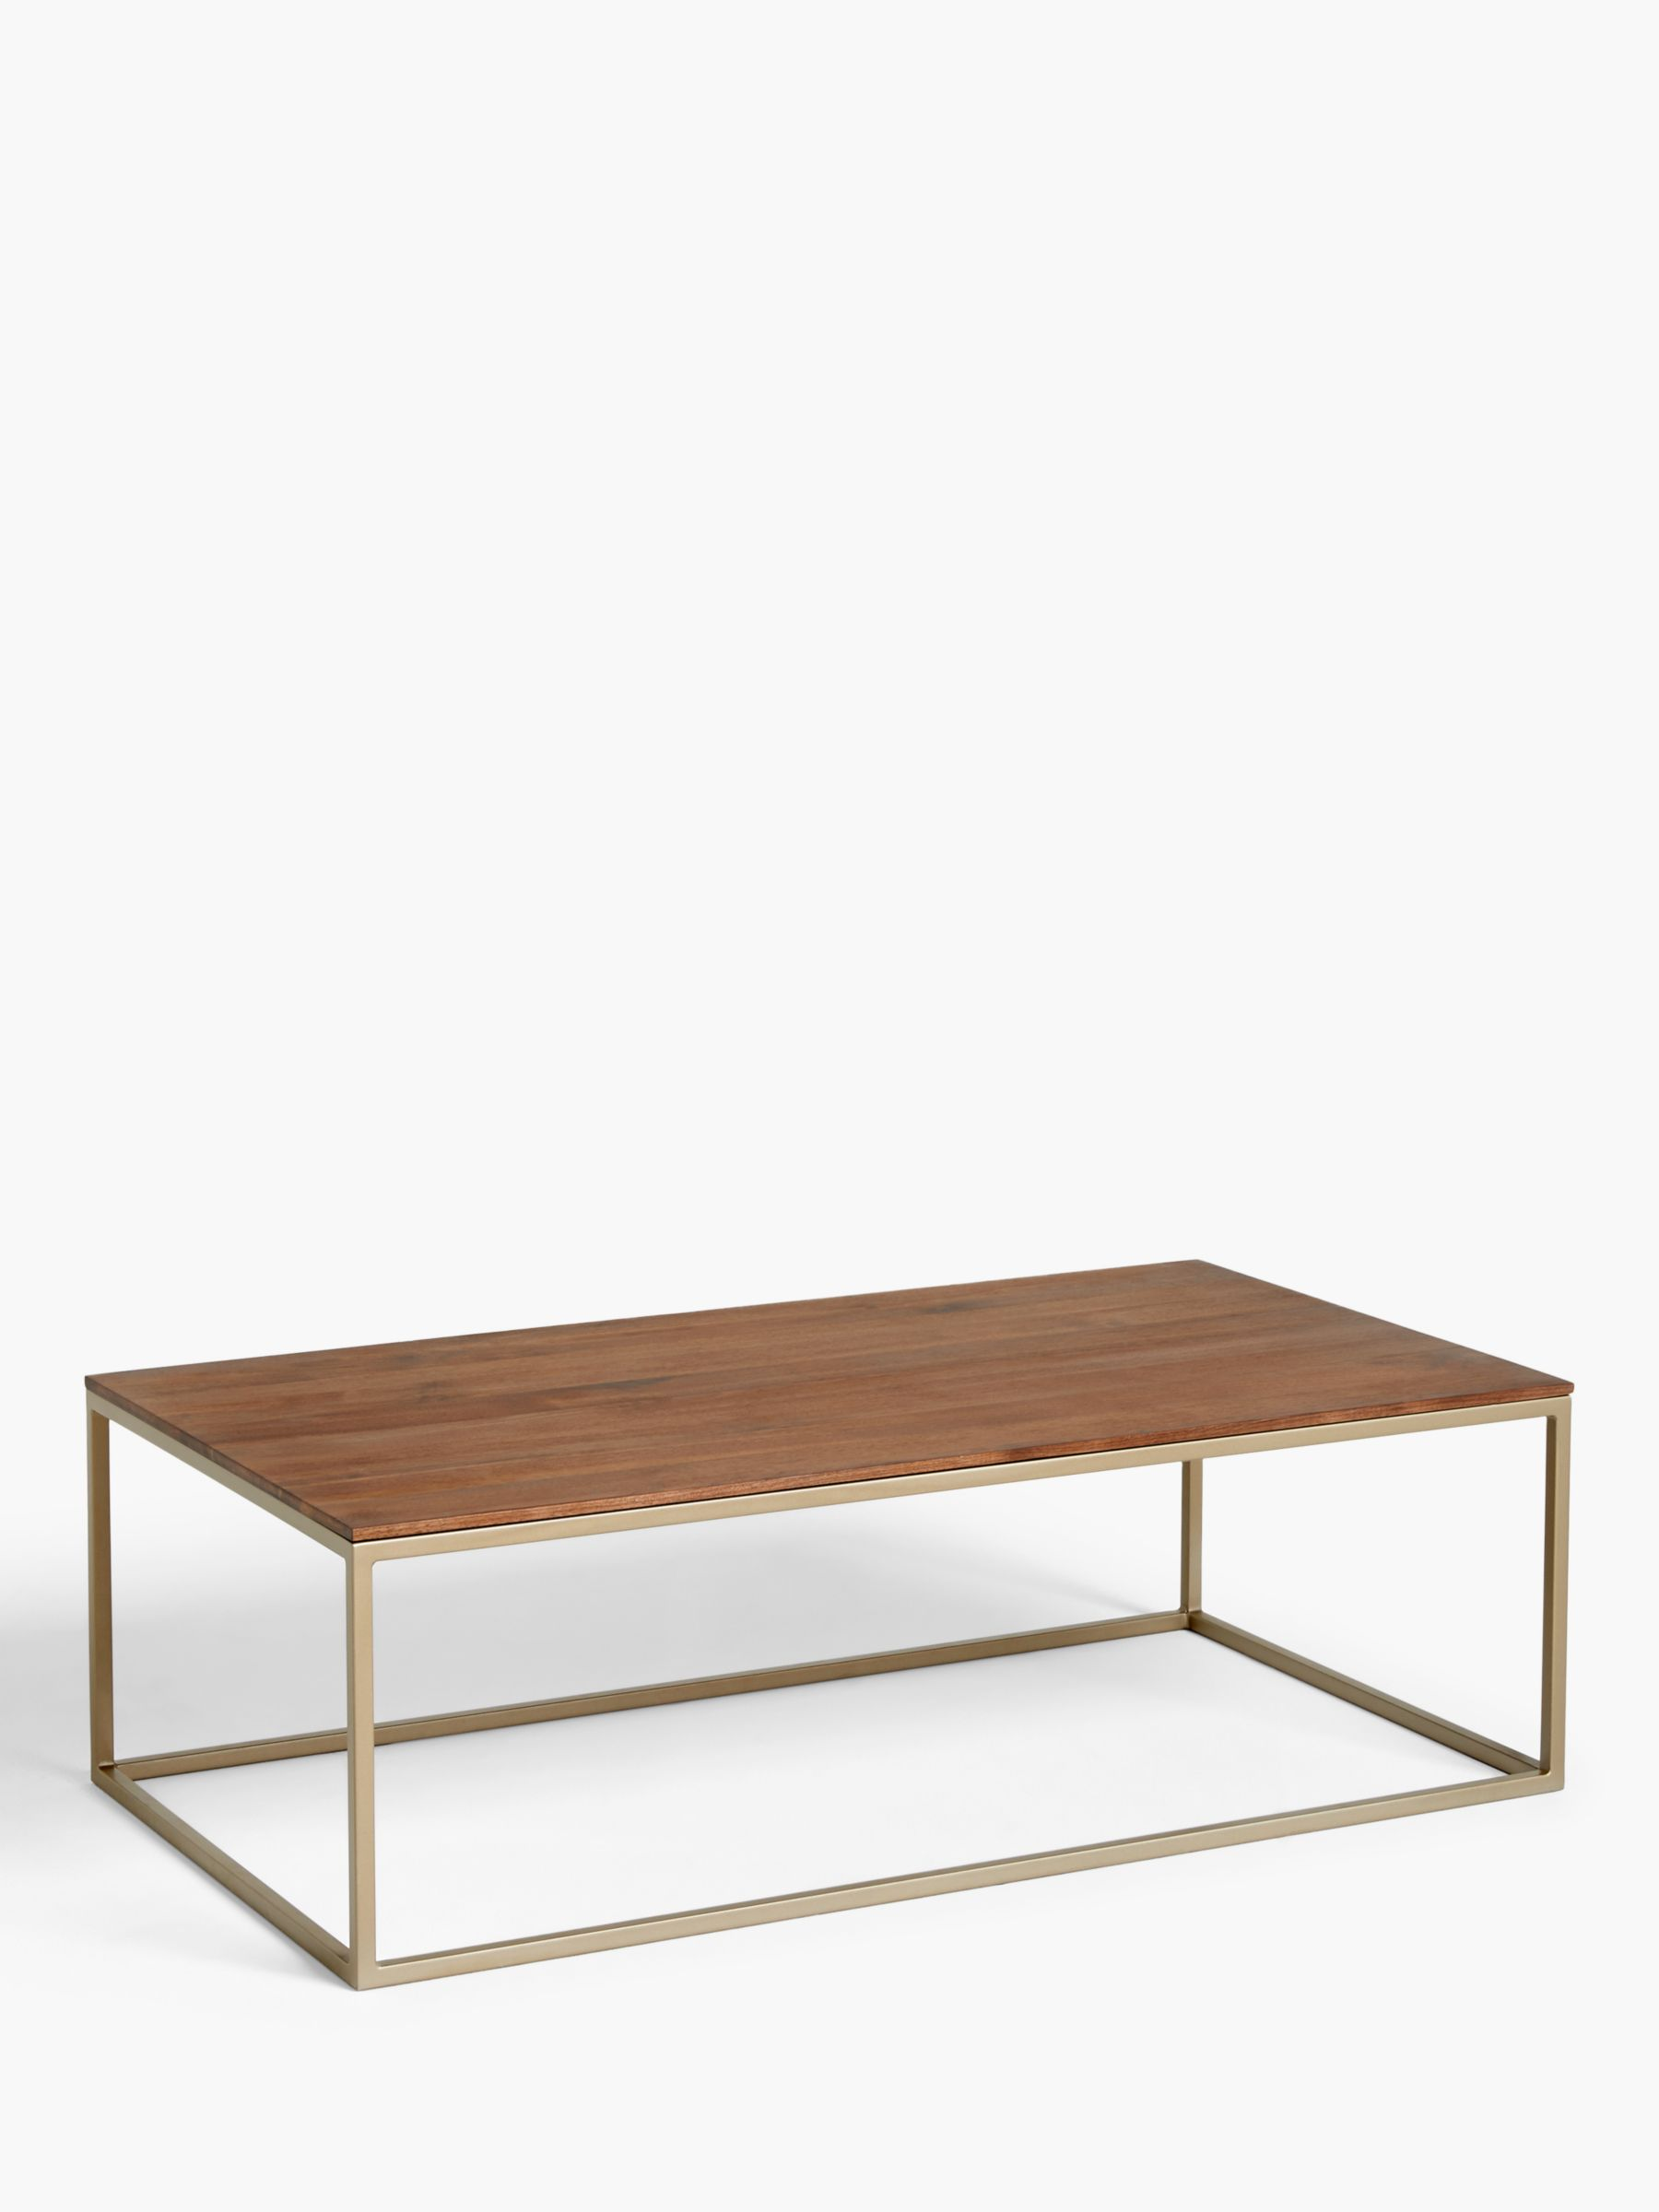 Buy John Lewis & Partners Raise Coffee Table, Walnut Online at johnlewis.com